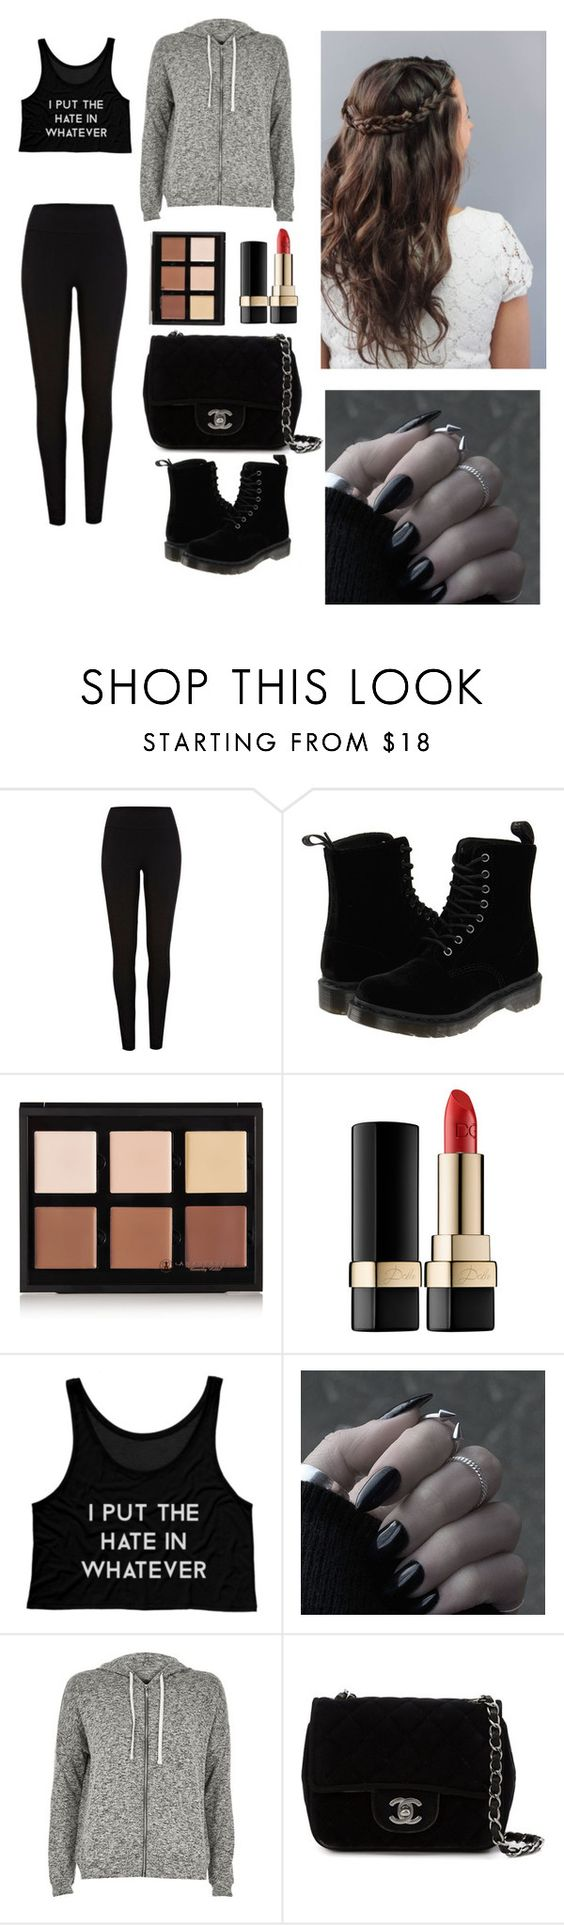 """""""i put the HATE in wHATEver"""" by cuteoutfits1755 ❤ liked on Polyvore featuring Dr. Martens, Anastasia Beverly Hills, Dolce&Gabbana, River Island and Chanel"""